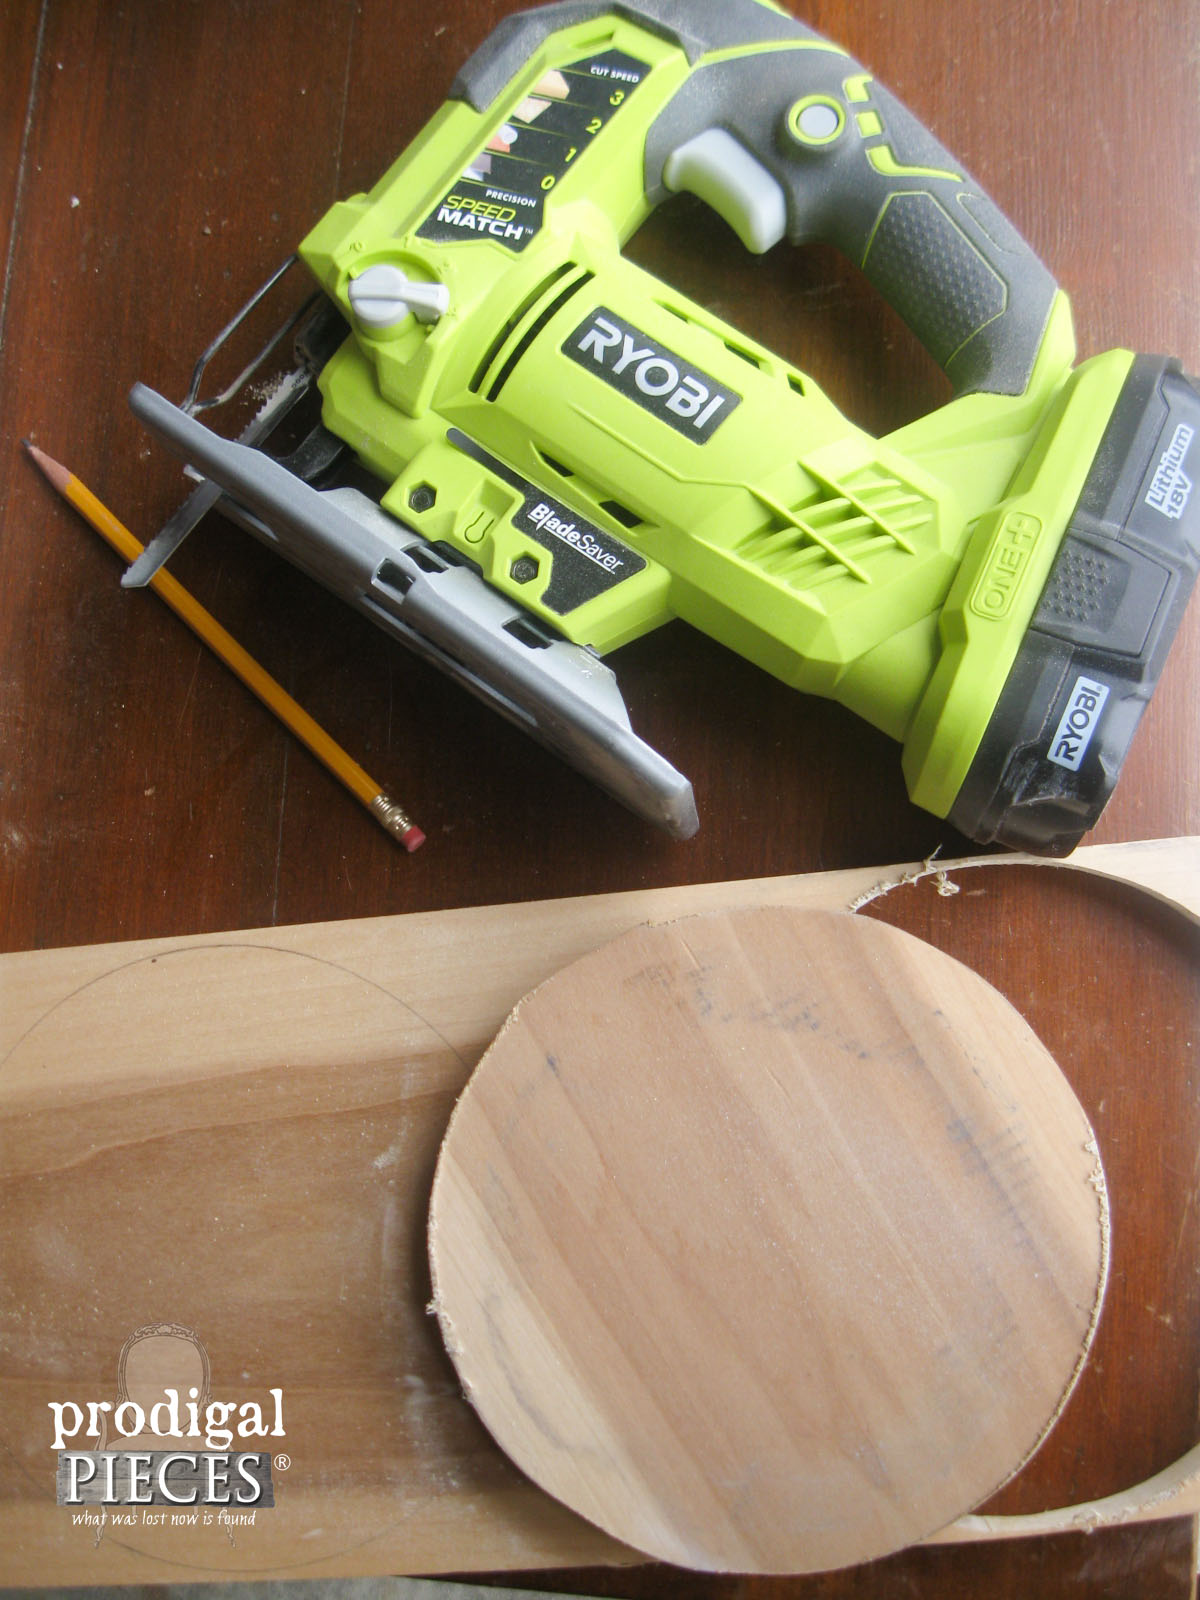 Cut Out Wood Rounds with Ryobi Cordless Jigsaw | Prodigal Pieces | www.prodigal pieces.com